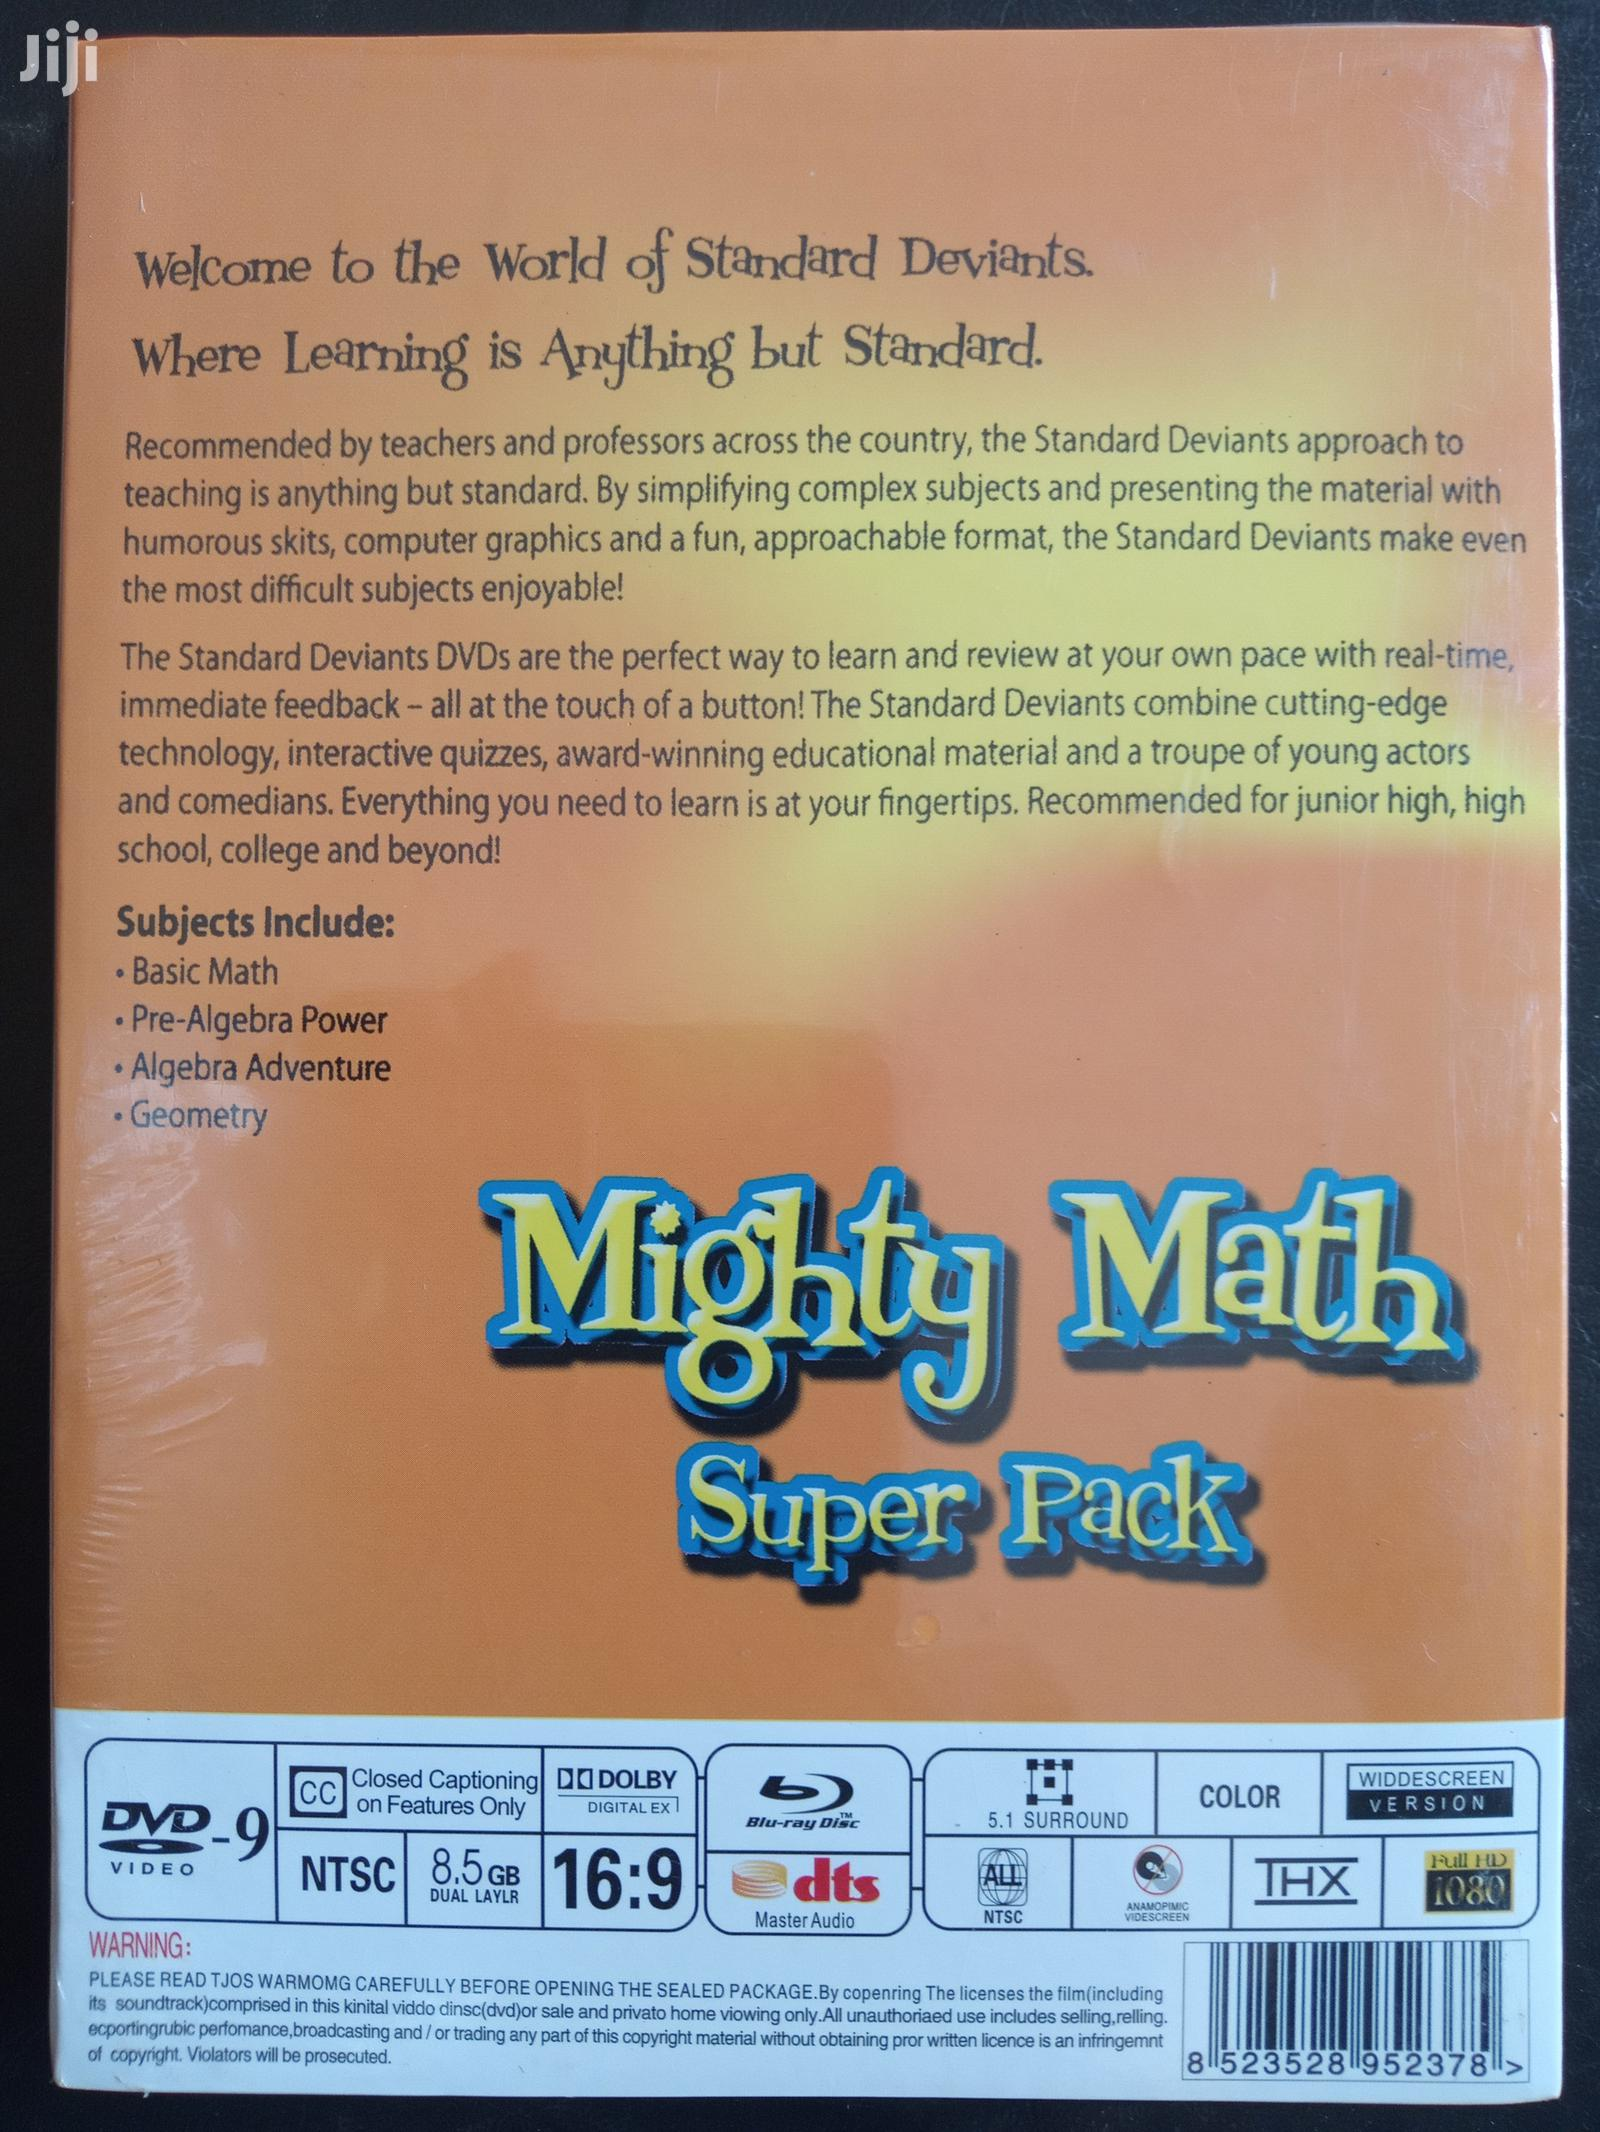 The Standard Deviants - Dvd Mighty Math Pack (FREE SHIPPING) | CDs & DVDs for sale in Akinyele, Oyo State, Nigeria